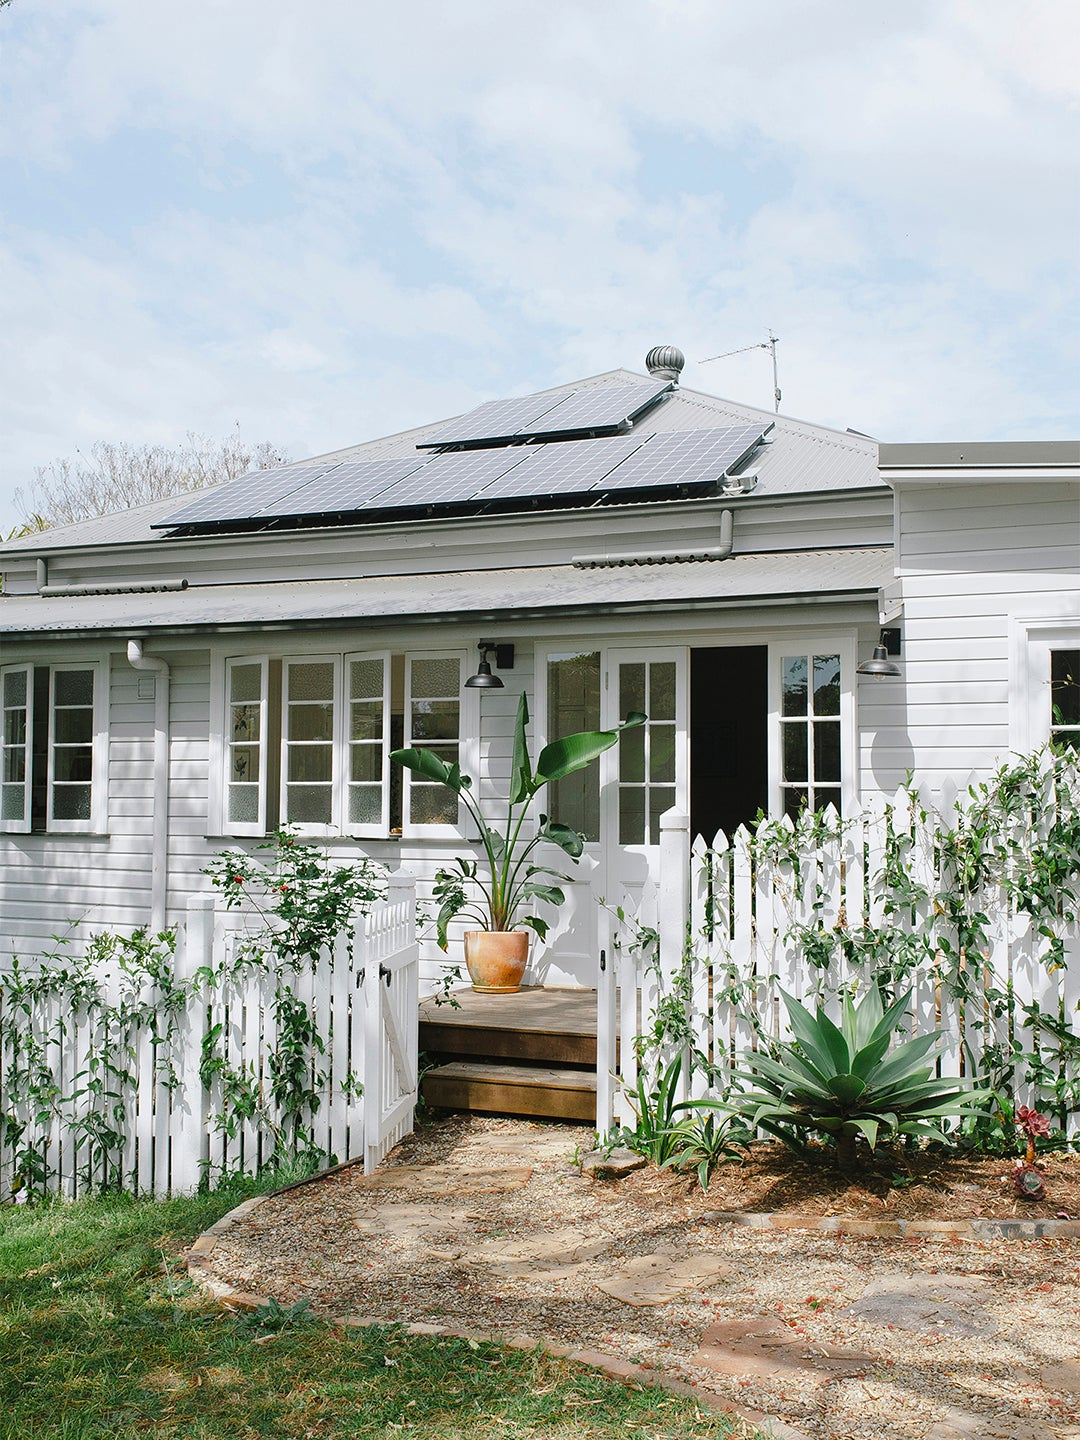 00-feature-eco-friendly-home-domino